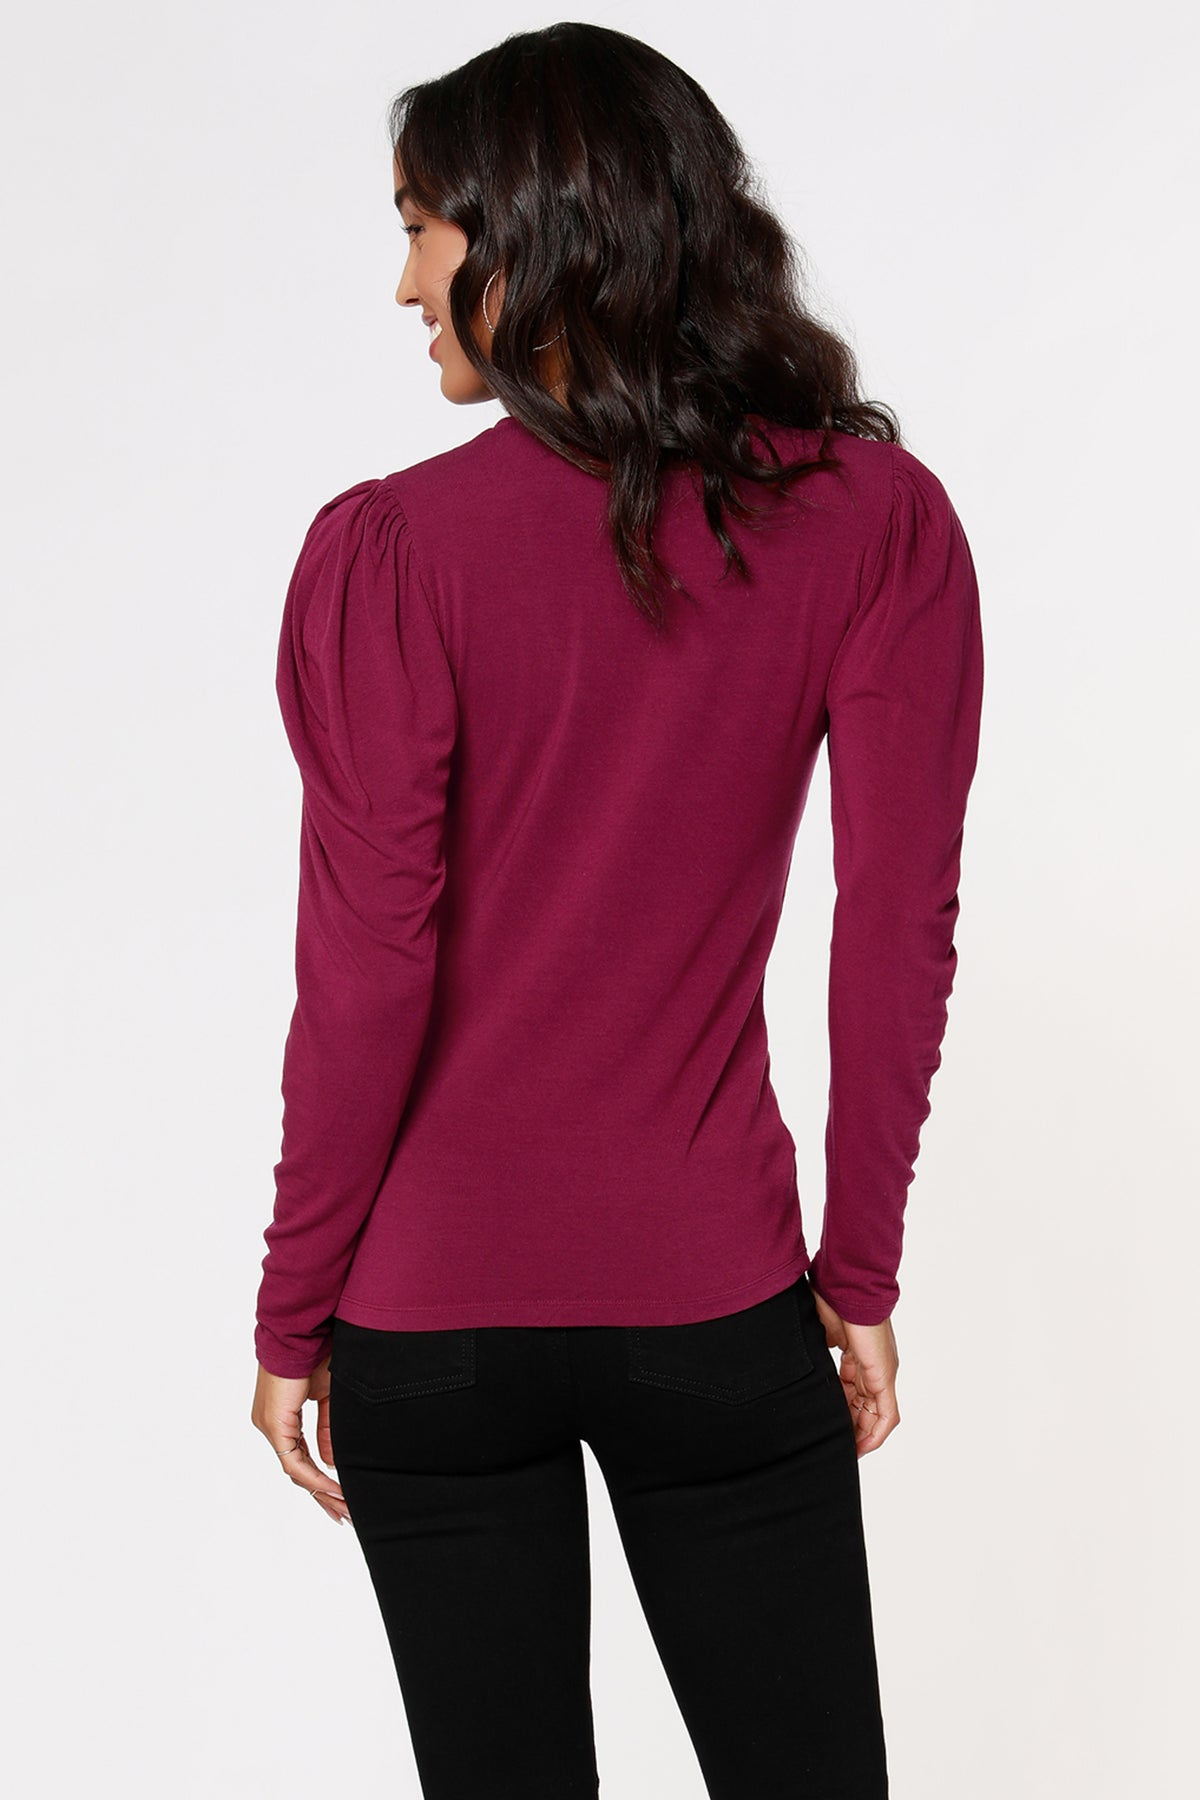 COSMO JERSEY SHIRRED SLEEVE TOP